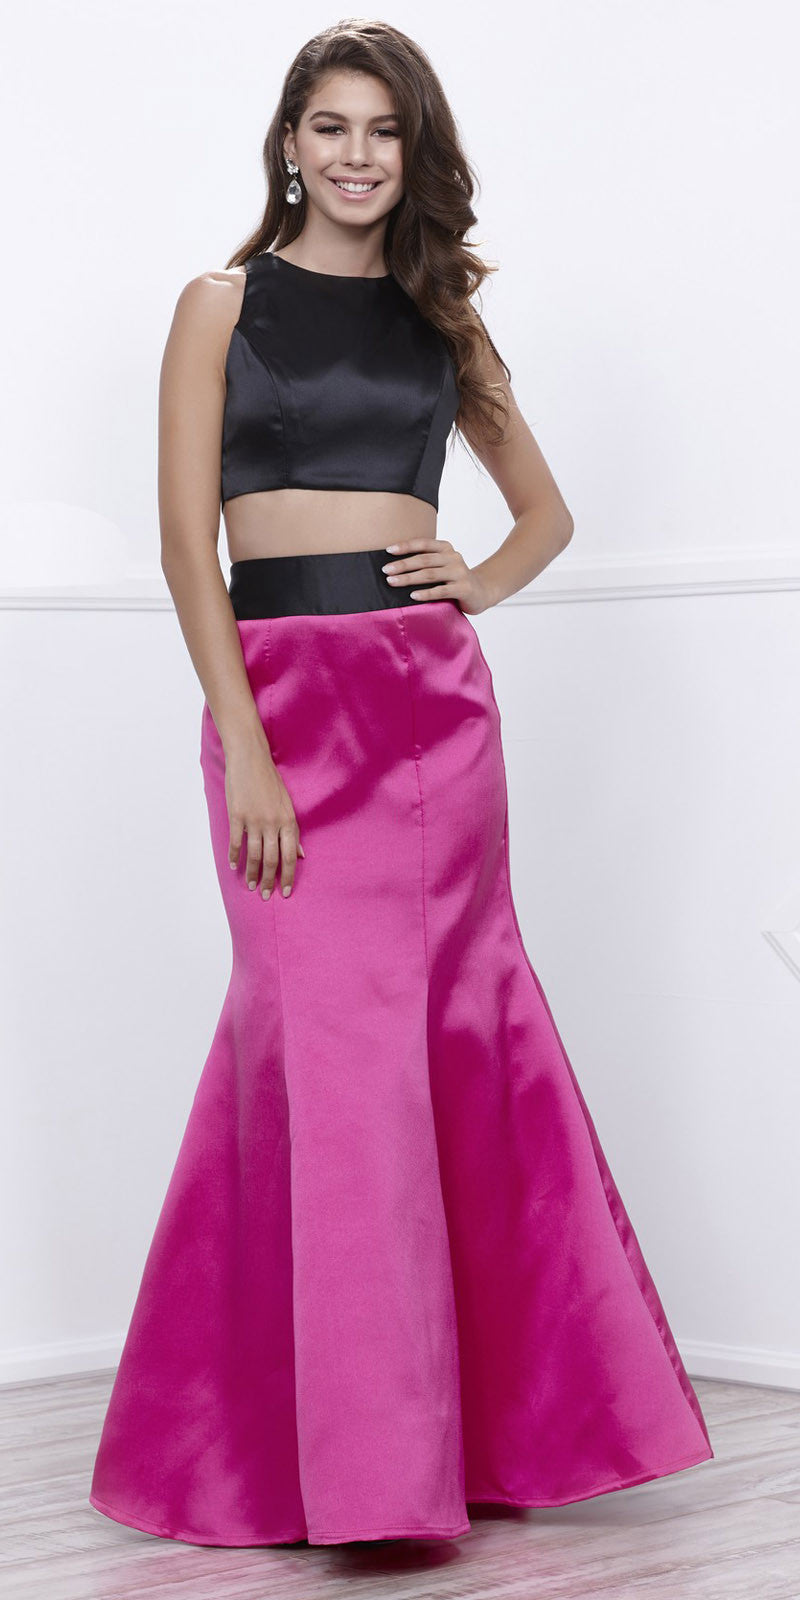 3dd4685d26689 Black Sleeveless Crop Top Fuchsia Mermaid Skirt Two-Piece Prom Gown. Tap to  expand